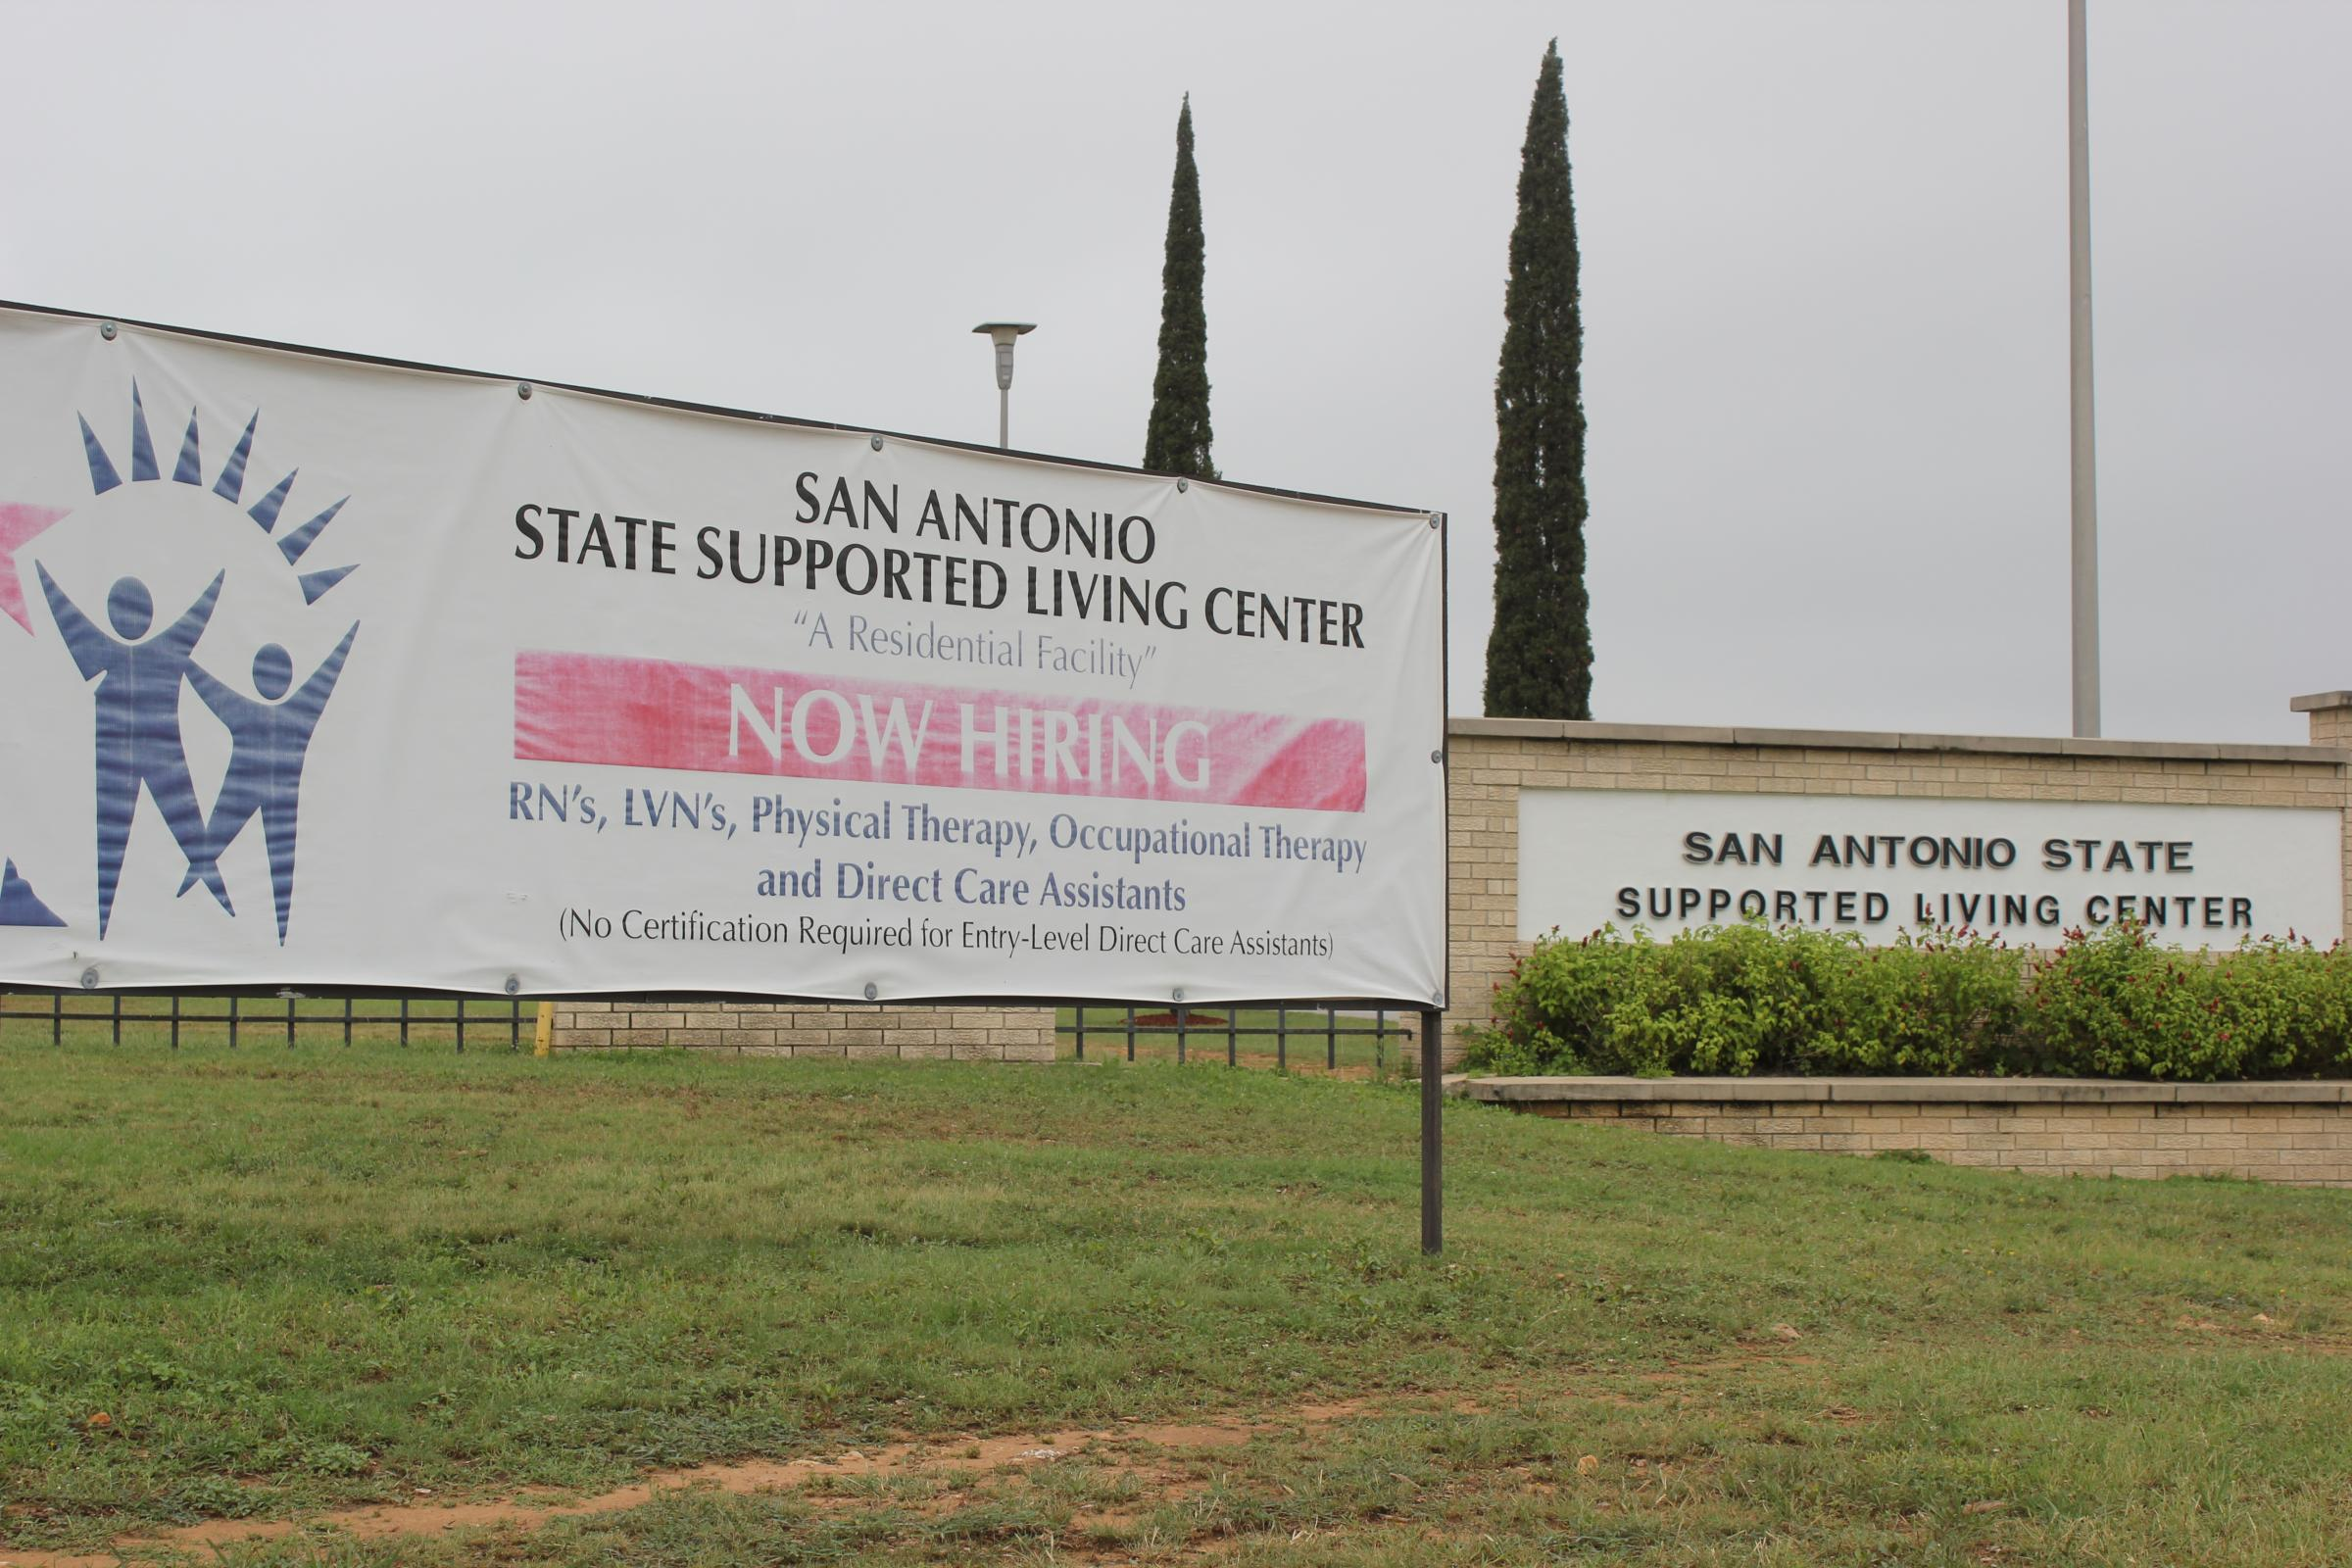 San Antonio State Supported Living Center.